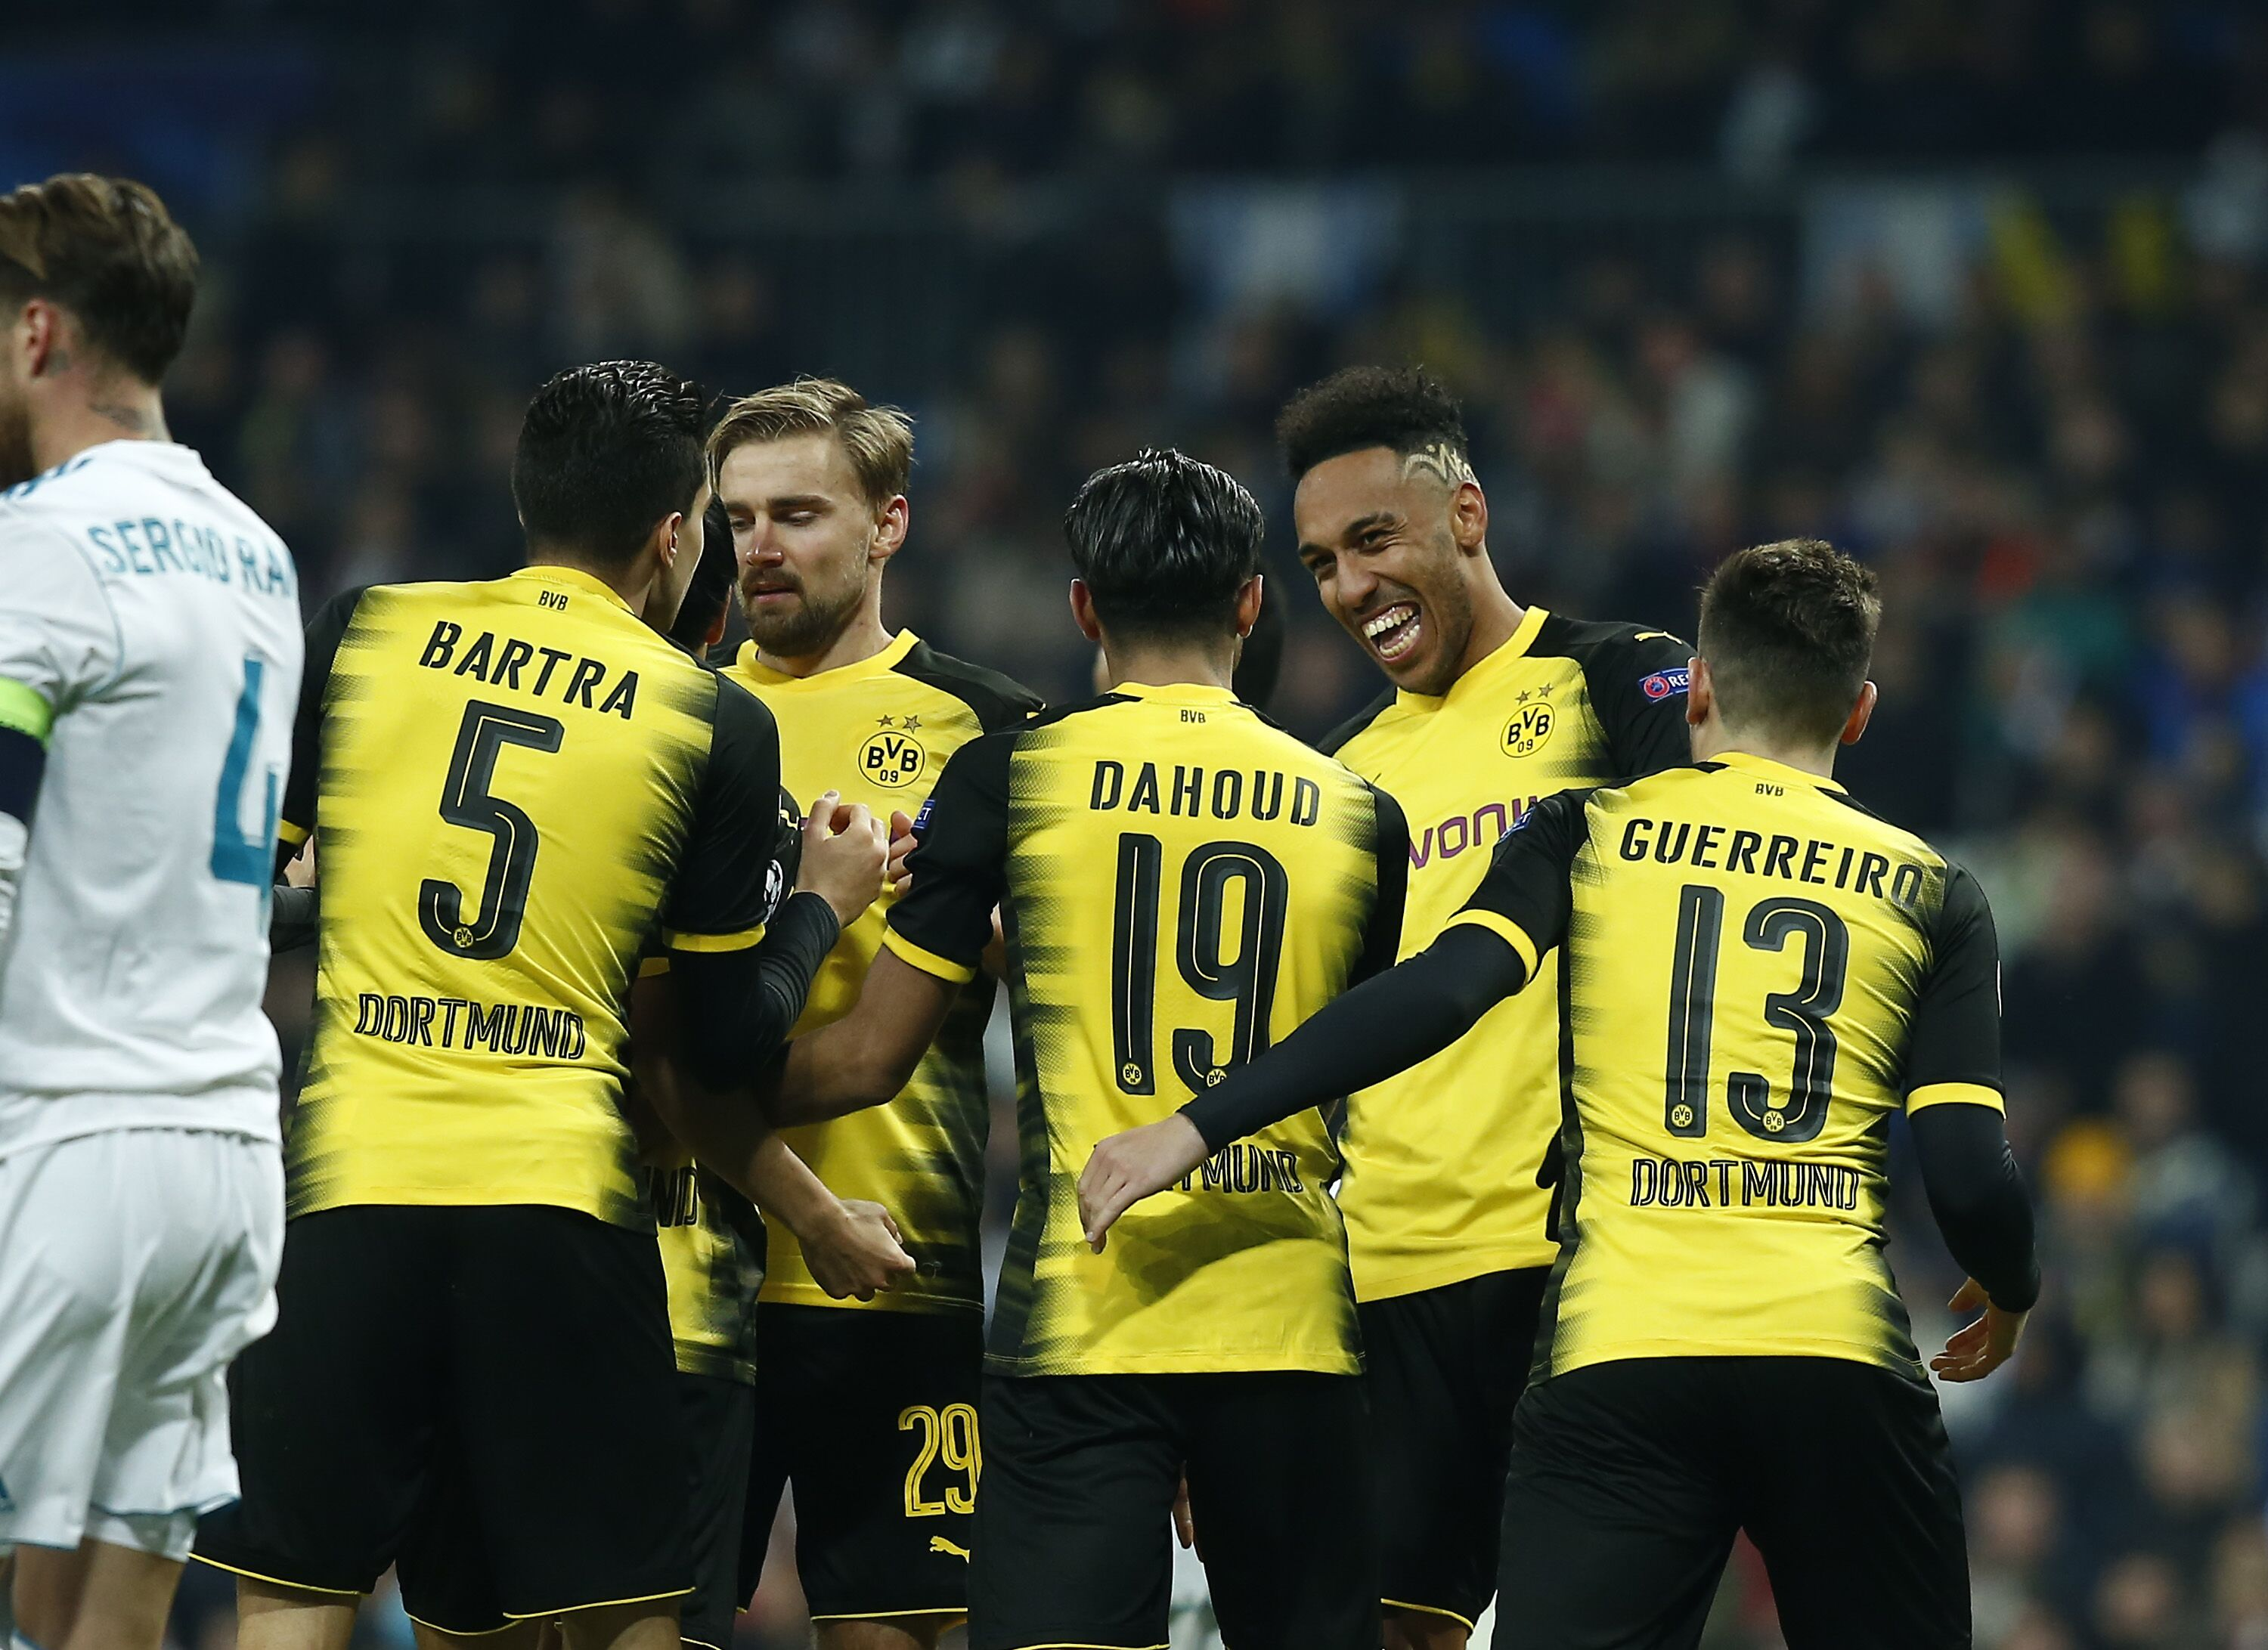 Europa League Dortmund 2021